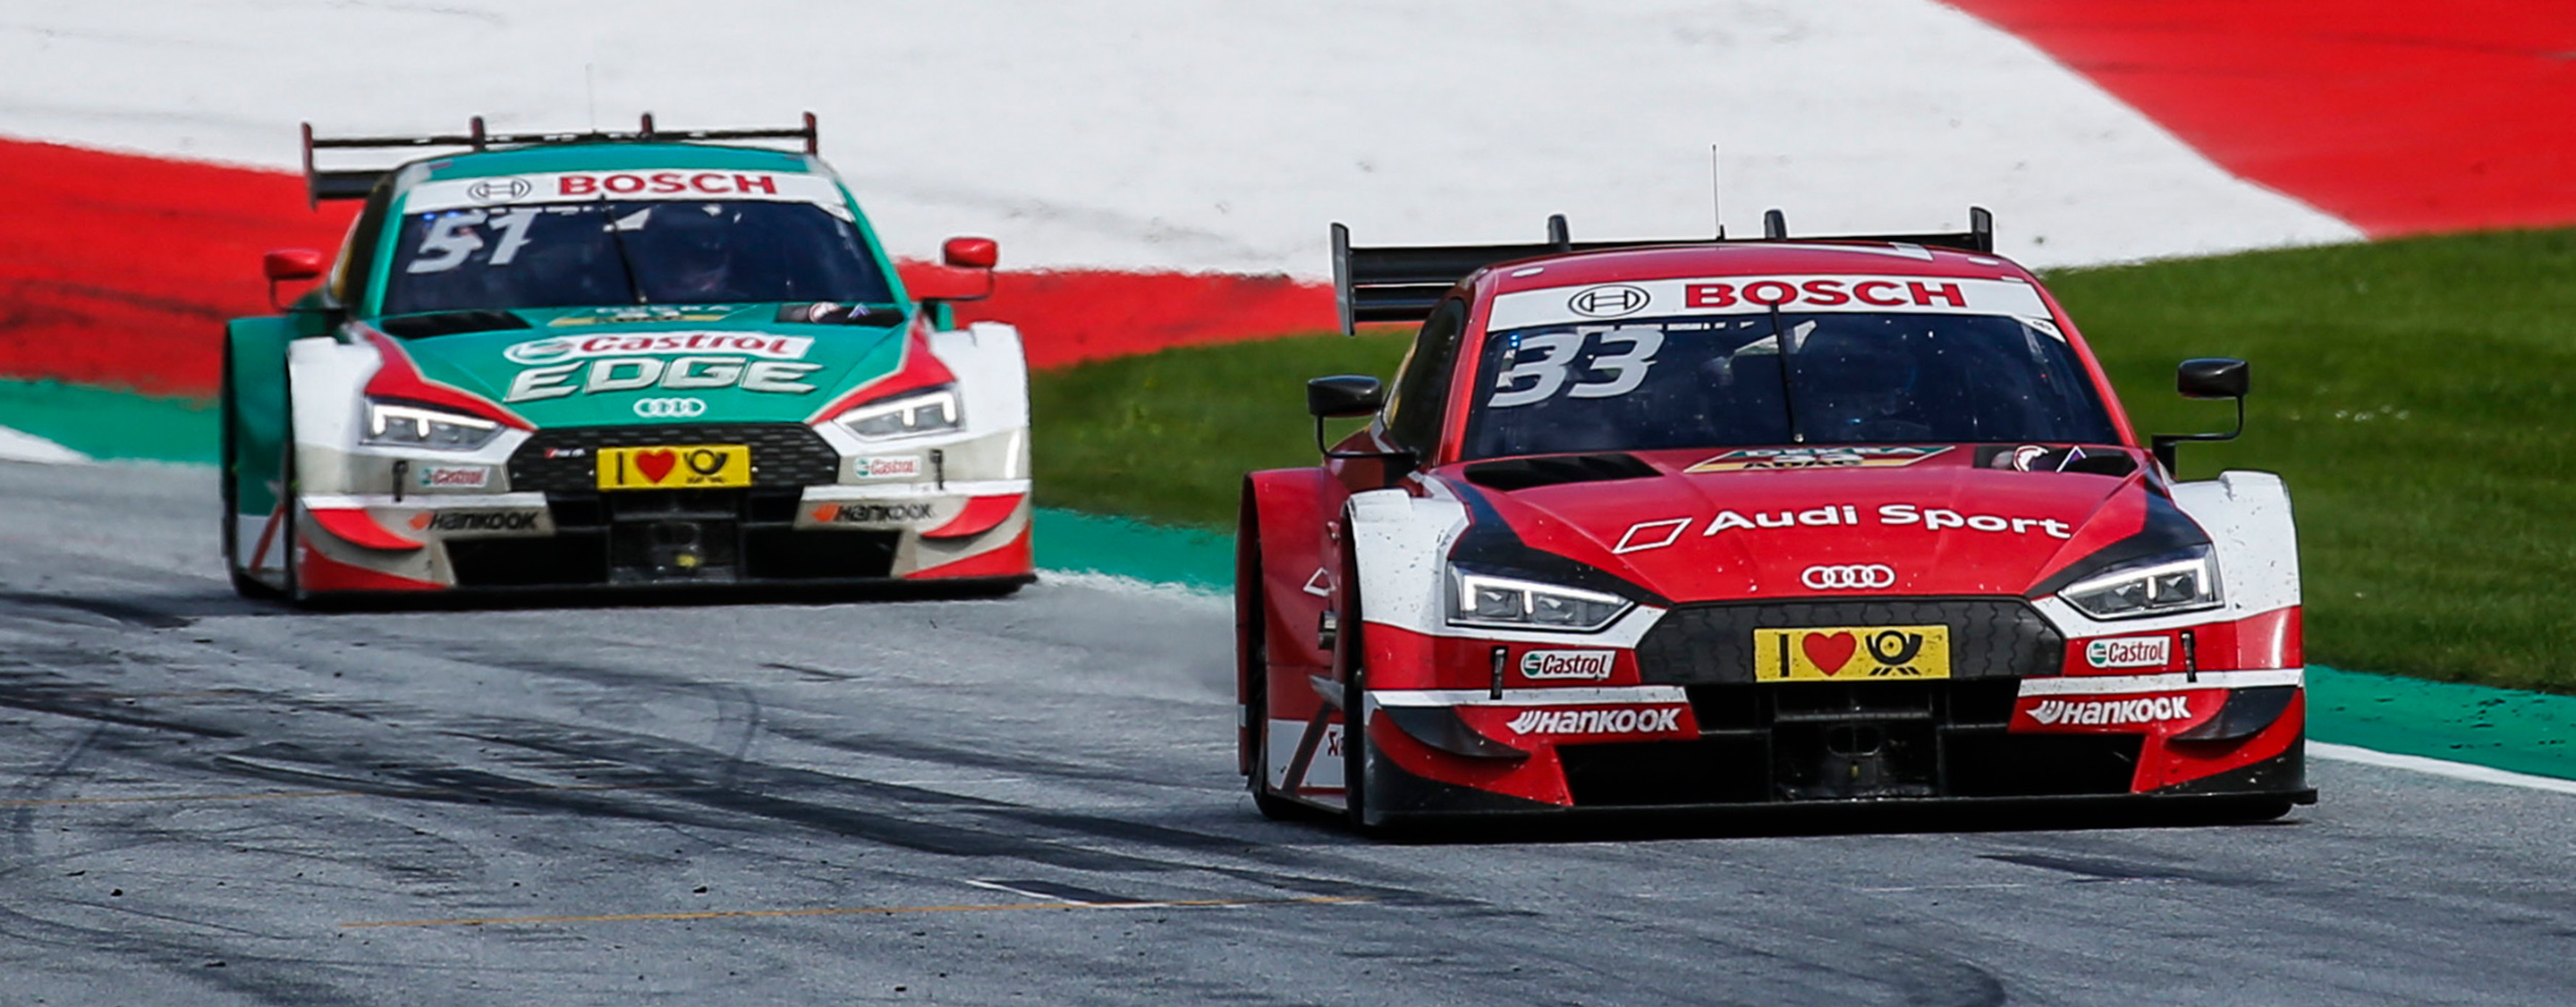 TrackWorthy - No. 33 Rene Rast Audi RS 5 DTM and No. 51 Audi RS 5 DTM Nico Muller